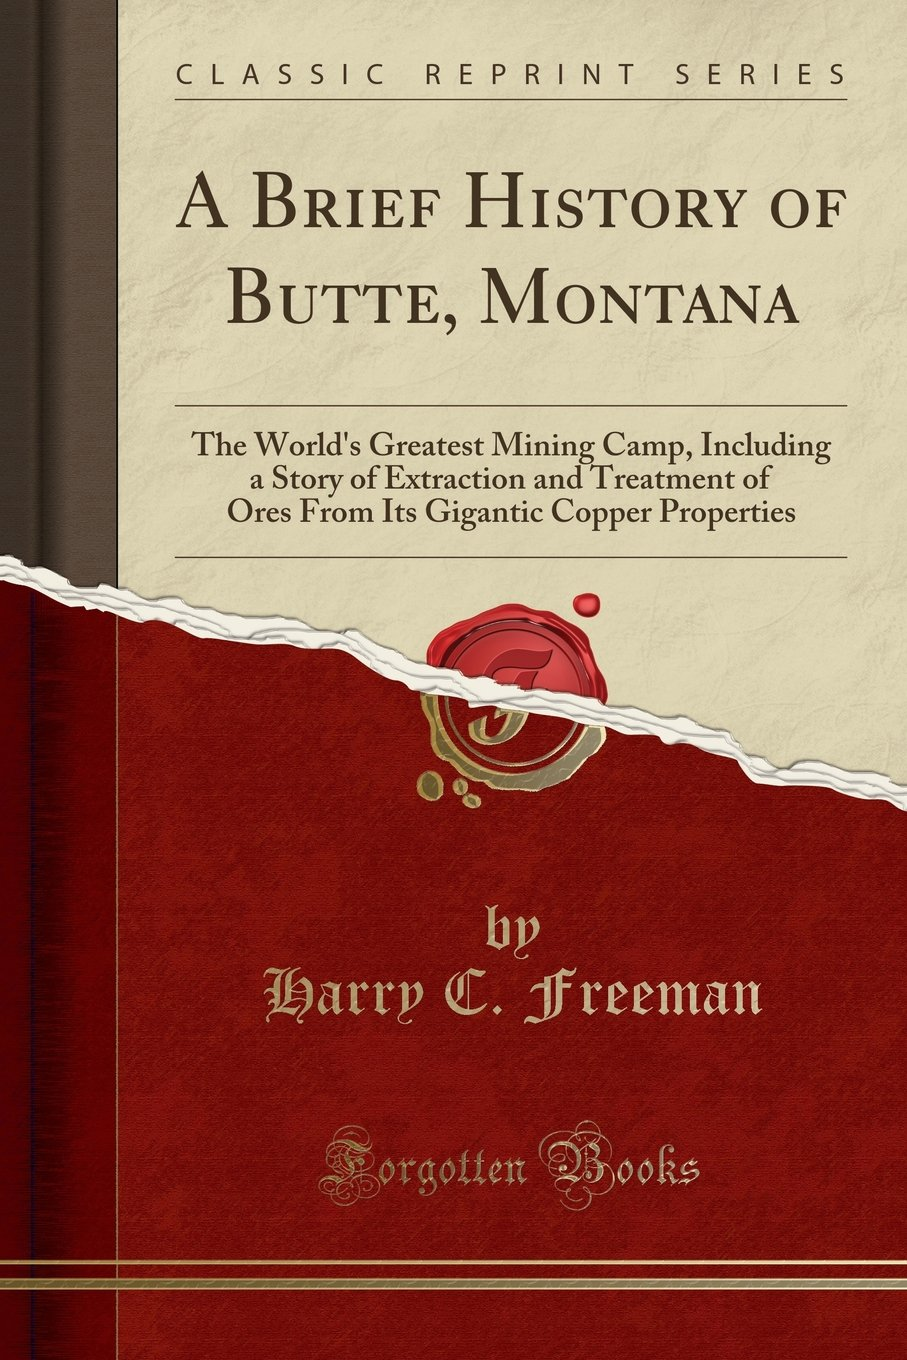 A Brief History of Butte, Montana: The World's Greatest Mining Camp, Including a Story of Extraction and Treatment of Ores From Its Gigantic Copper Properties (Classic Reprint) PDF